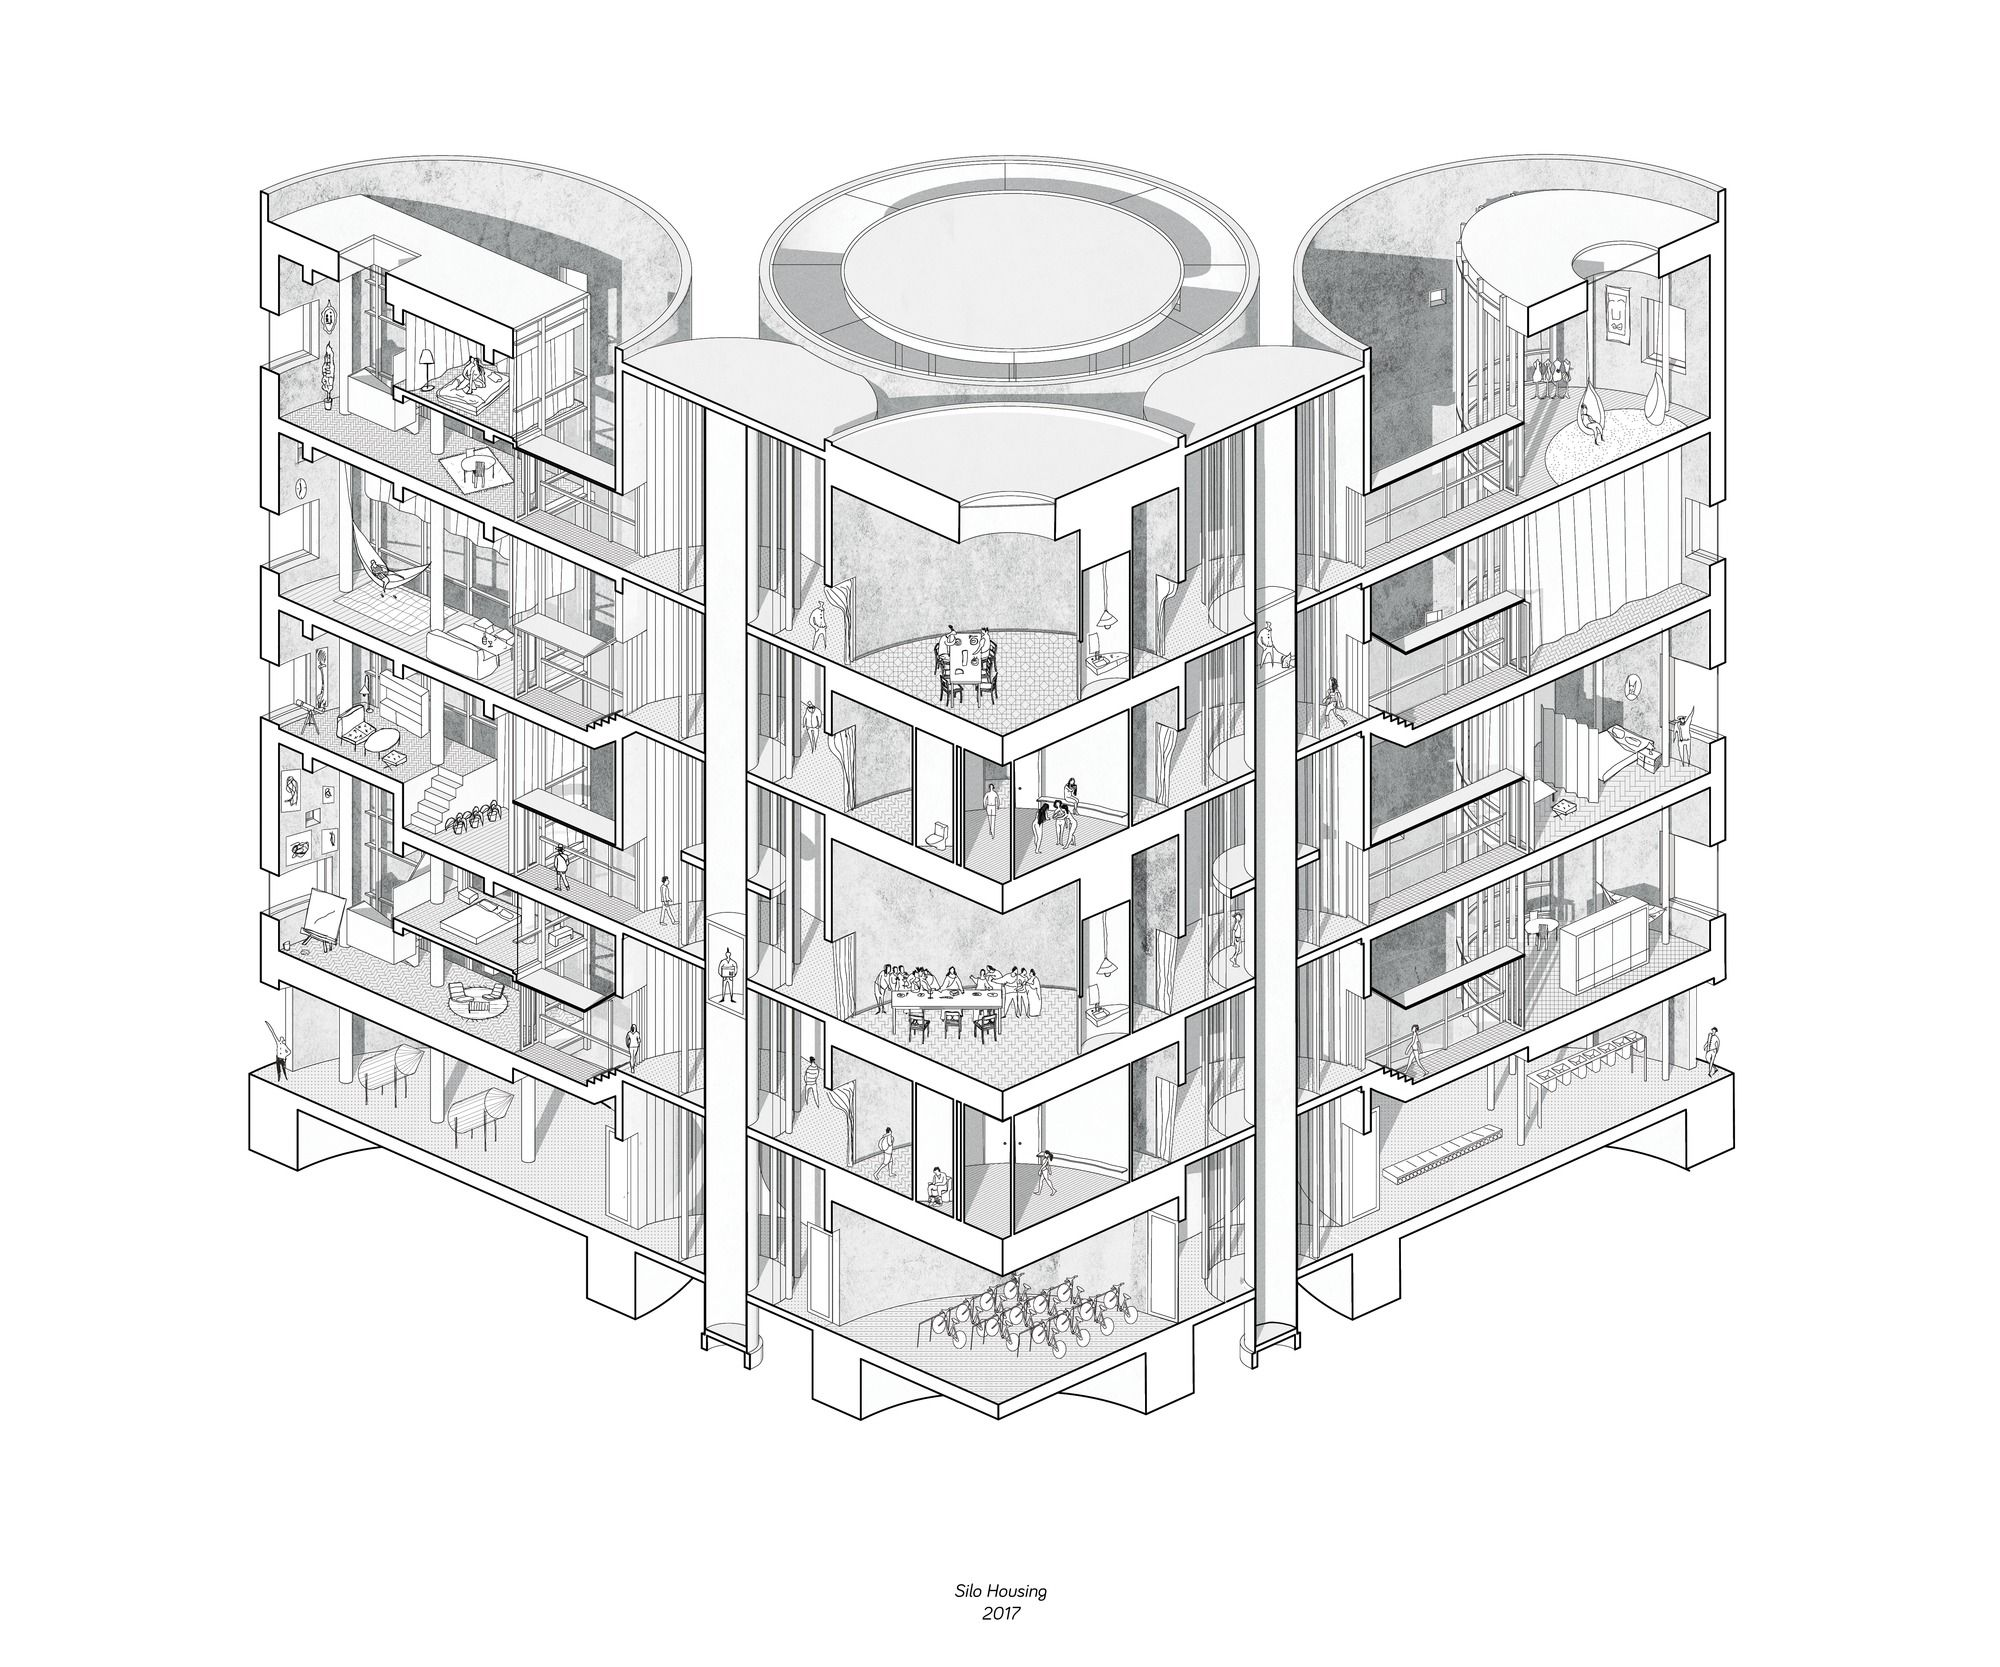 architecture the best architectural drawings - Cool Architecture Drawing